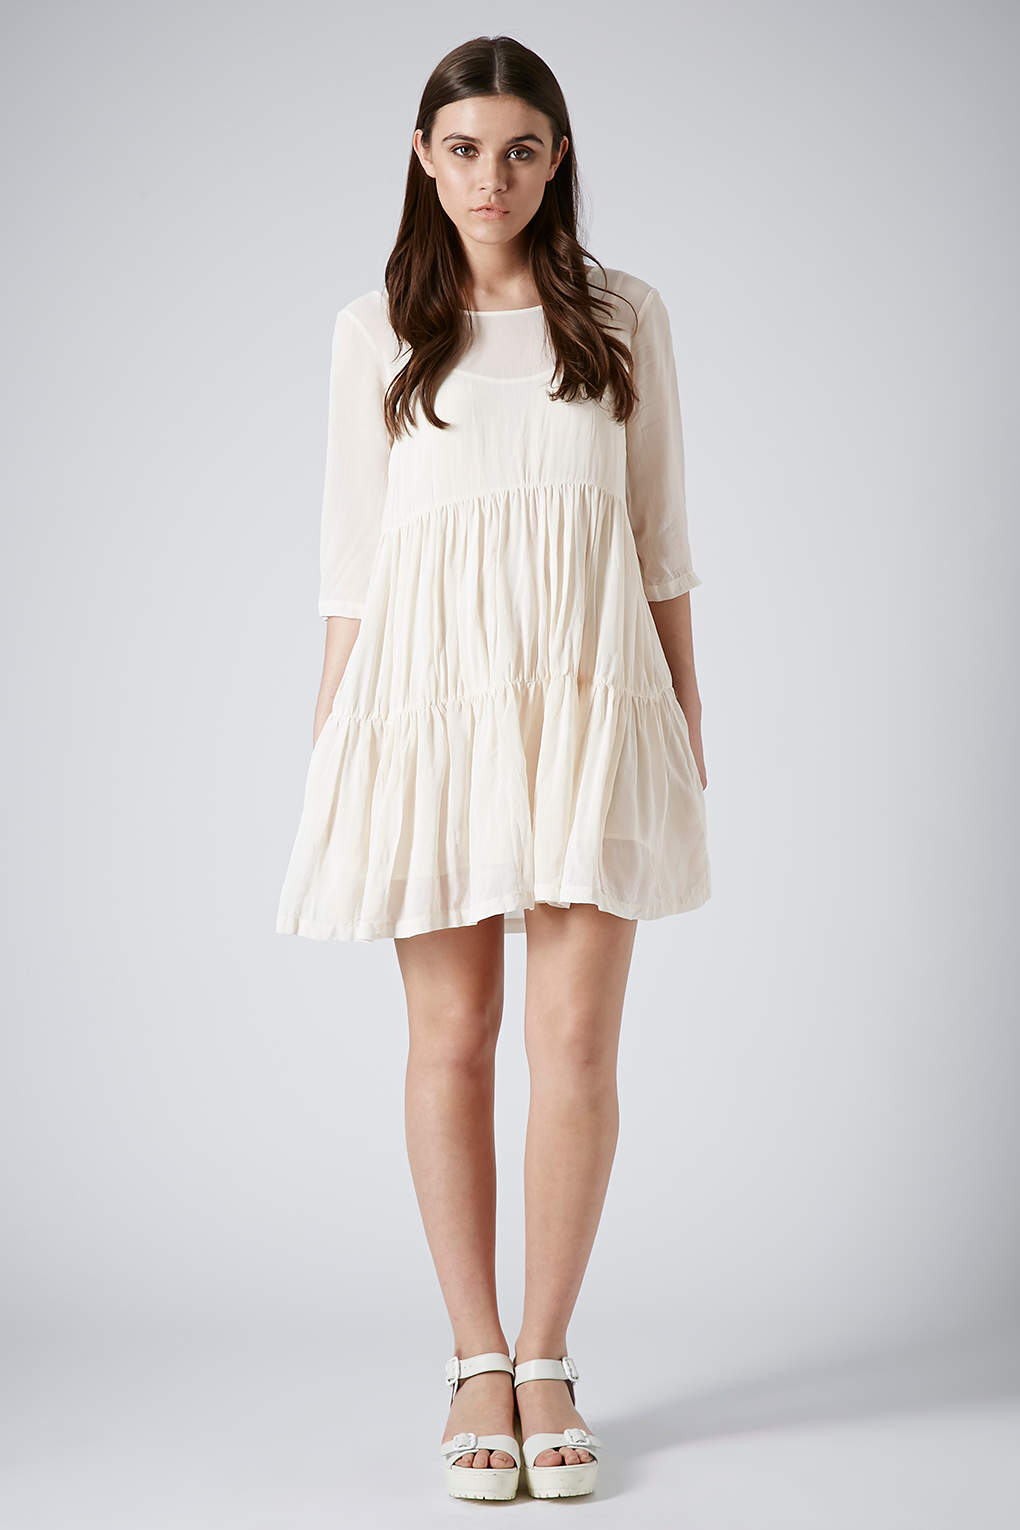 Pink and White Tiered Dress_Other dresses_dressesss